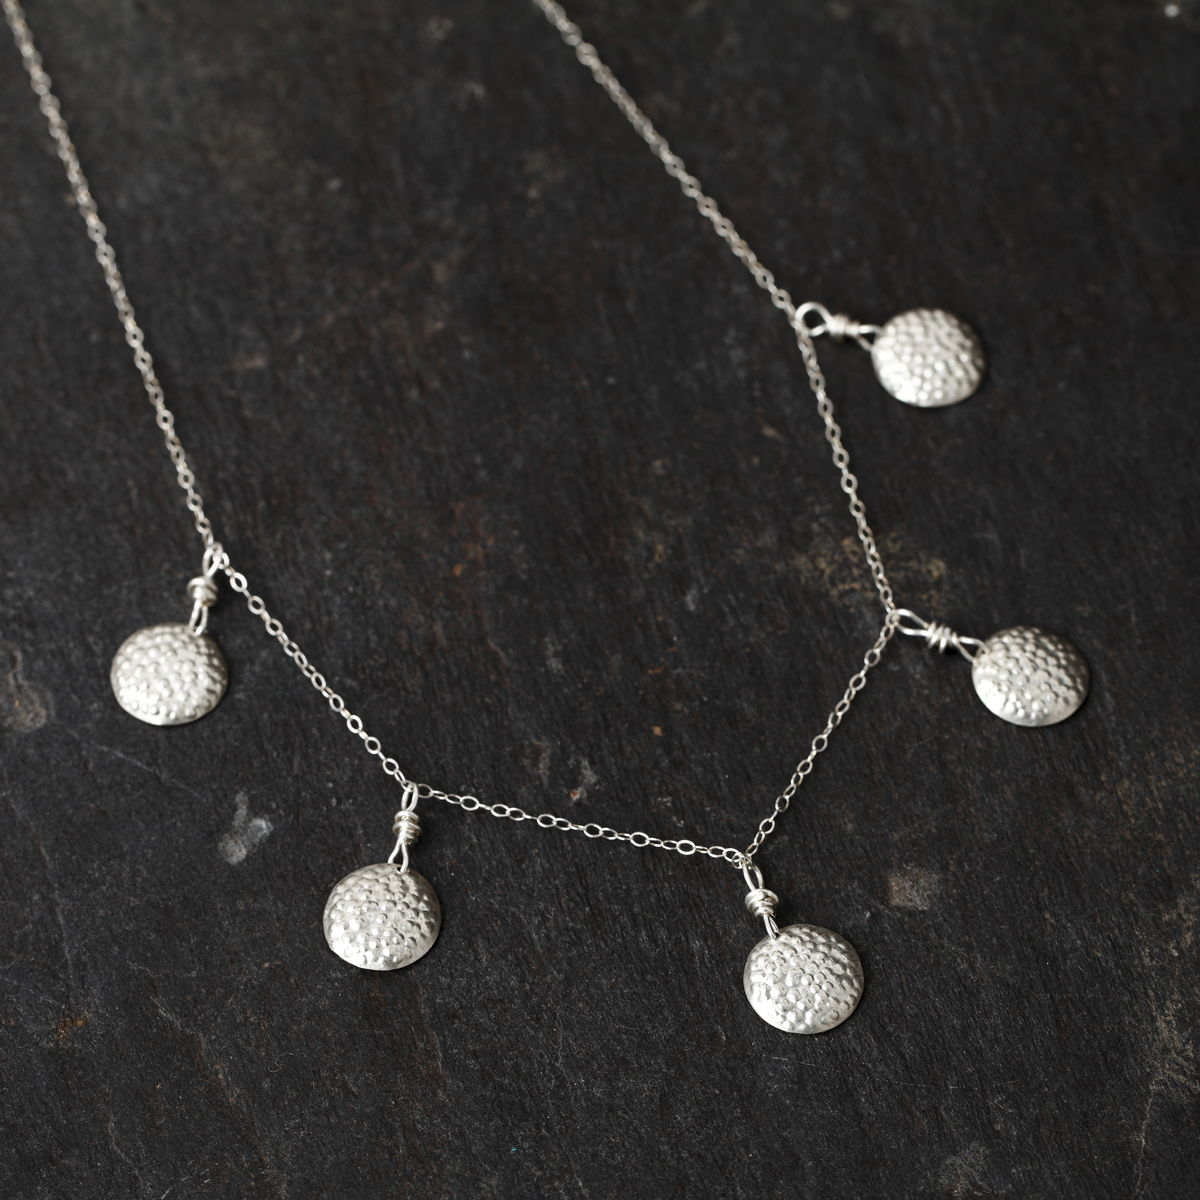 boutique timeless collections noelle set necklace teardrop products truly simply spruced tiered image